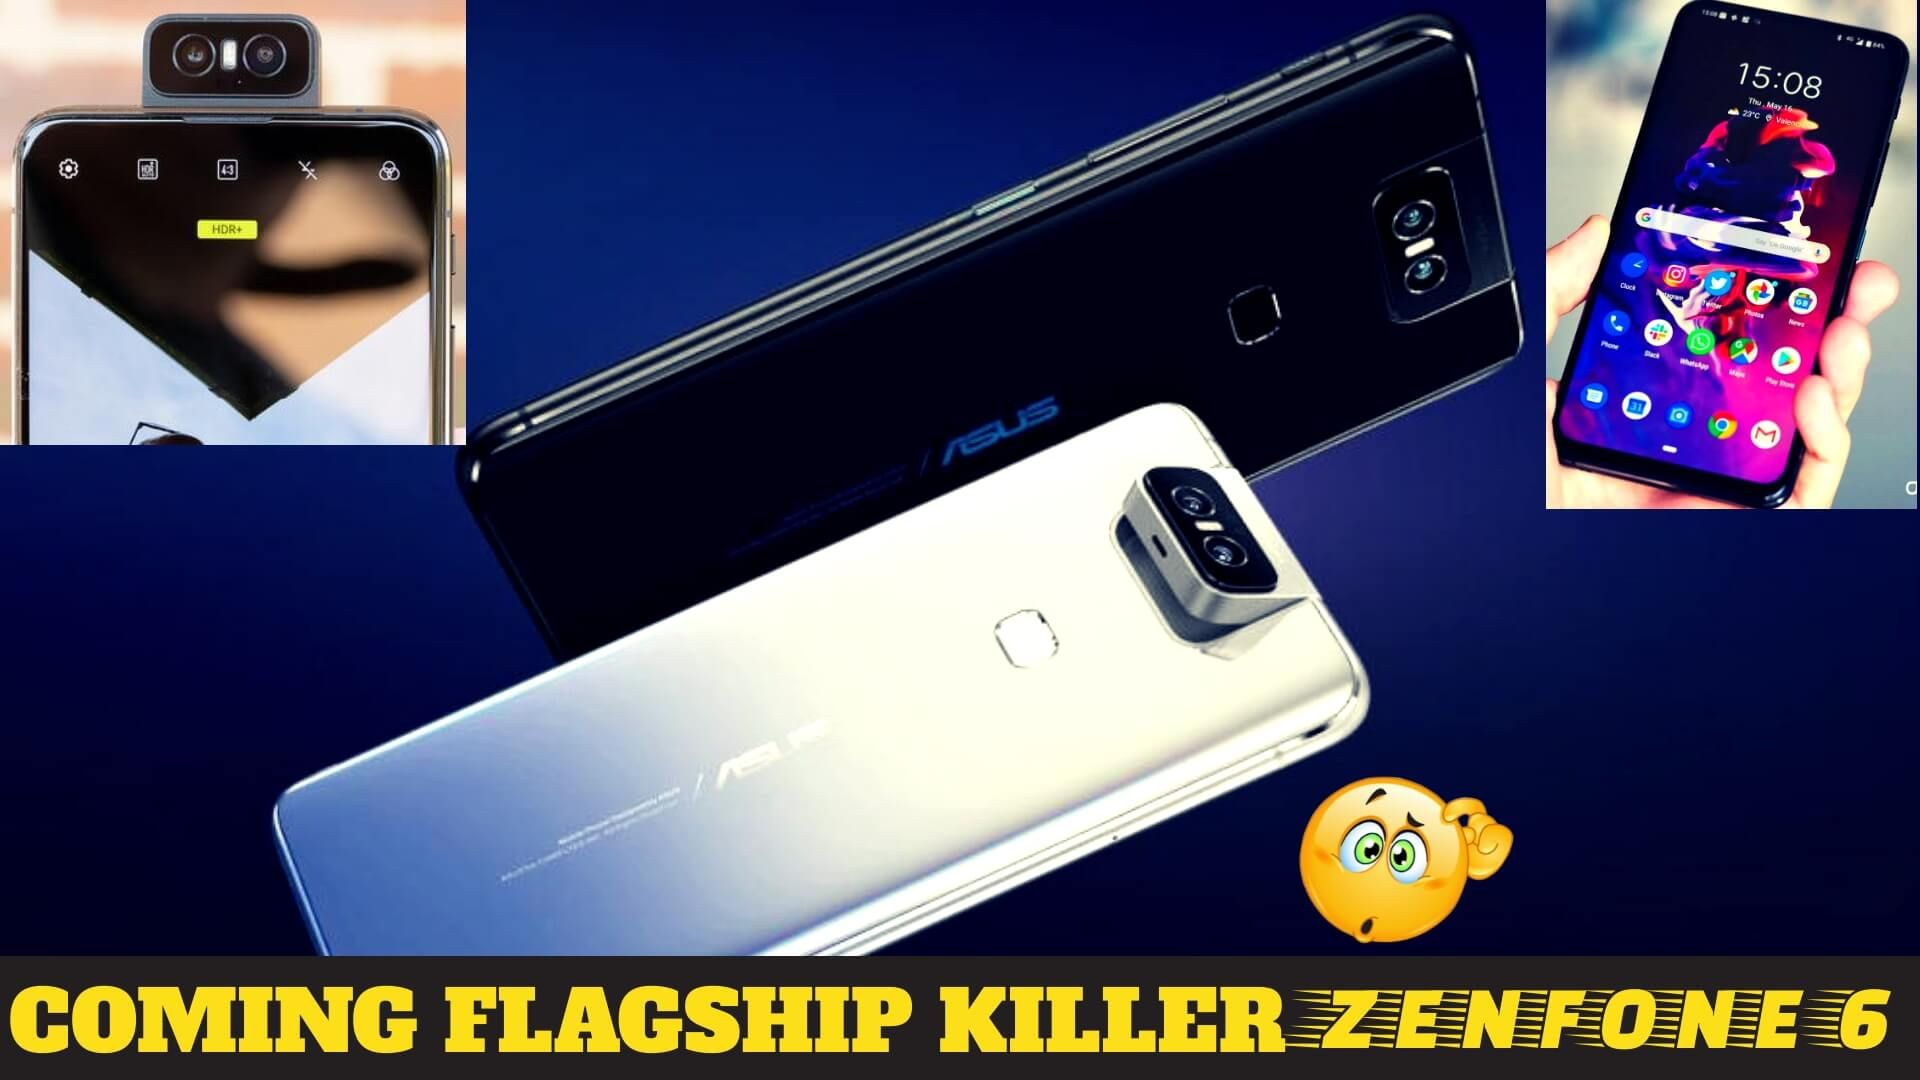 Asus Zenfone 6 Full Specification And Price With Launching Date In India Asus Zenfone Asus Phone